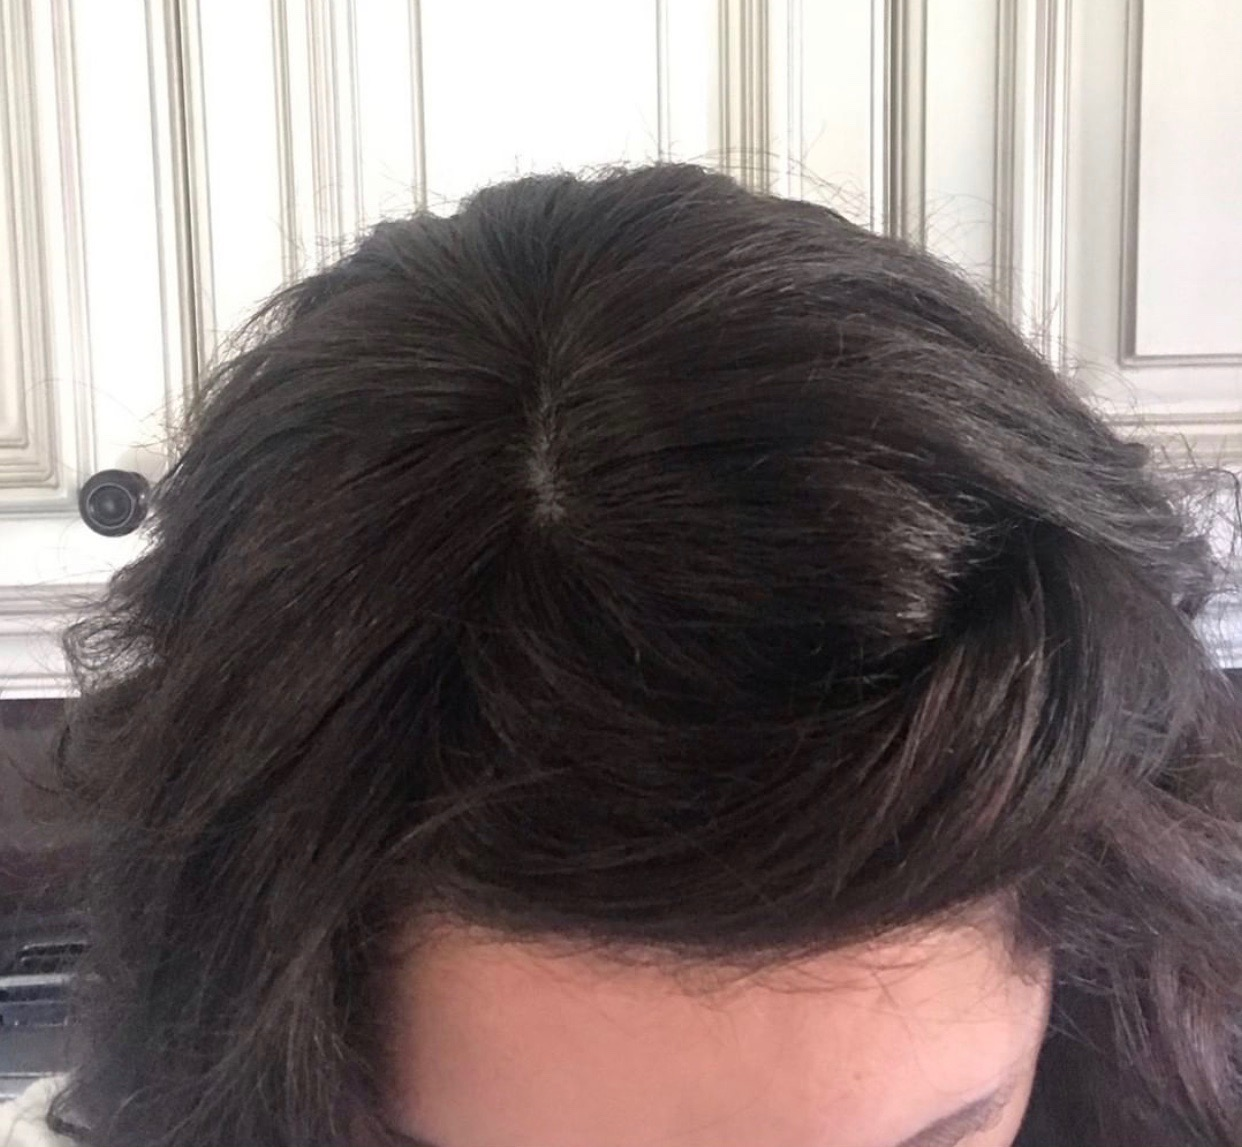 Hairloss in women alopecia wig wiglet Trich pcos hair thin hair thinning balding